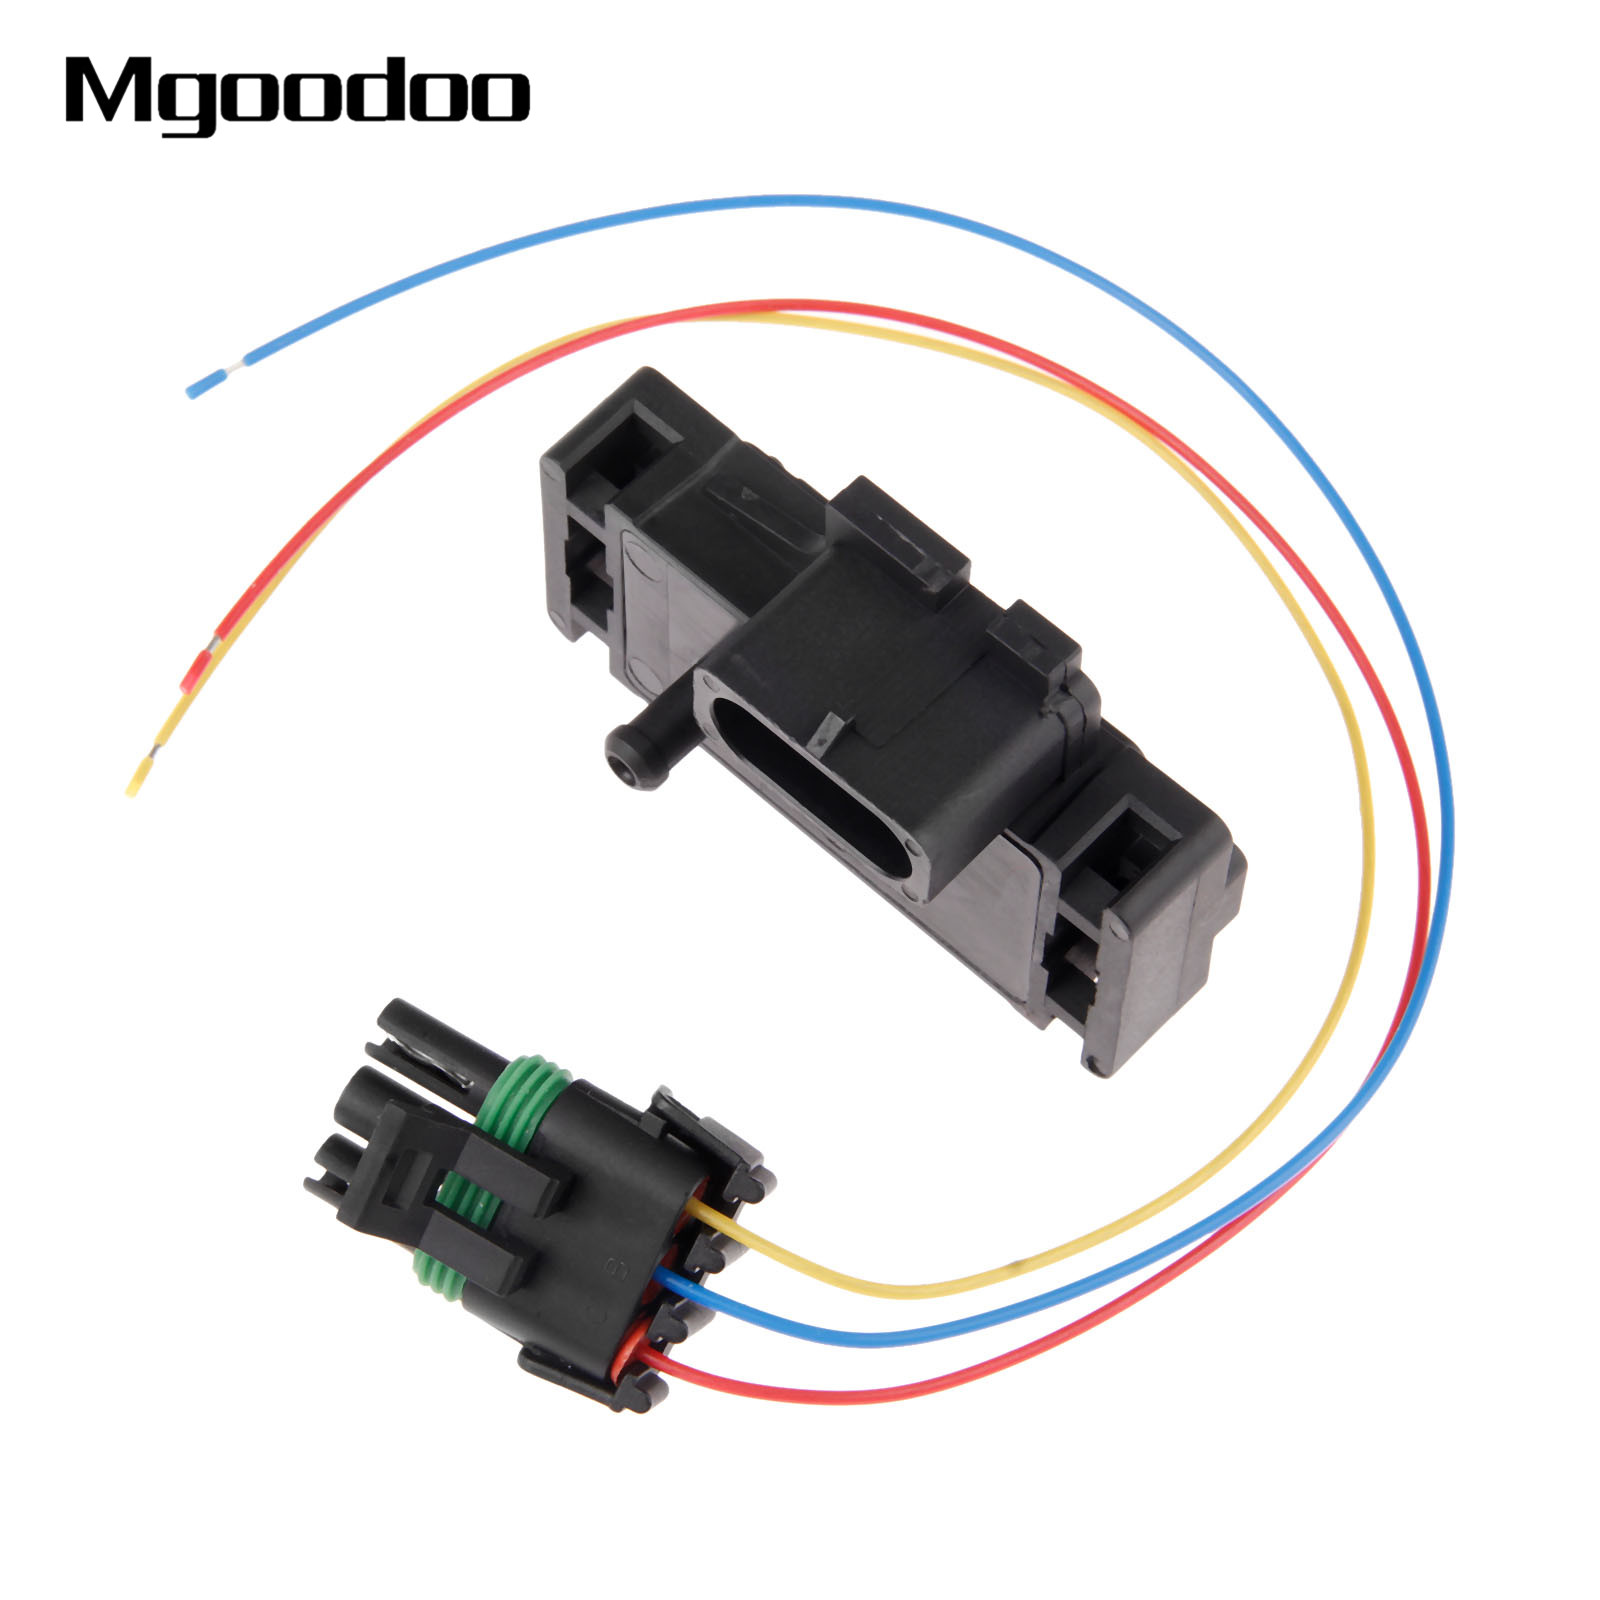 3 Bar MAP Sensor 12223861 ForGM Style Electromotive Motec Megasquirt Pigtail Connector Plug For Cadillac Chevrolet Pontiac Buick